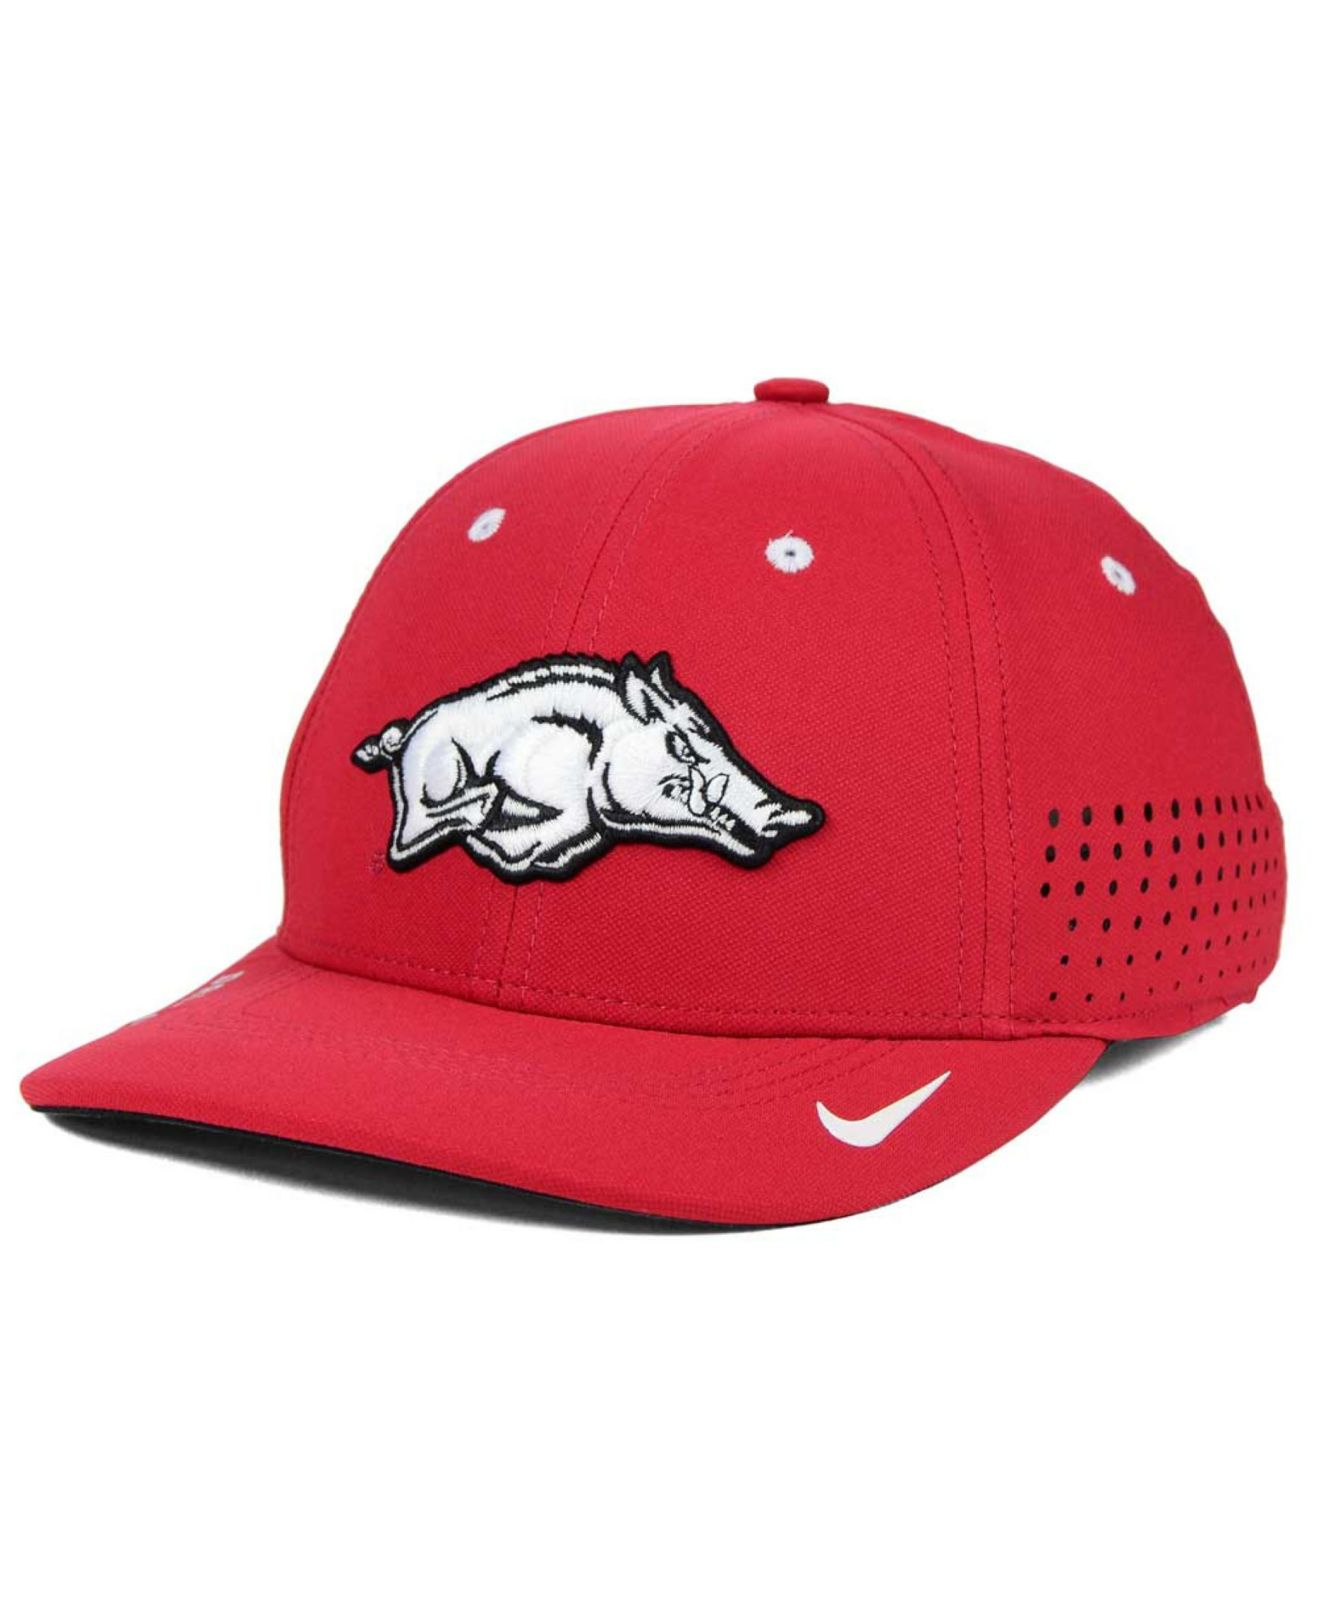 Lyst - Nike Arkansas Razorbacks Sideline Cap in Red for Men 47c1dfe3aeb3